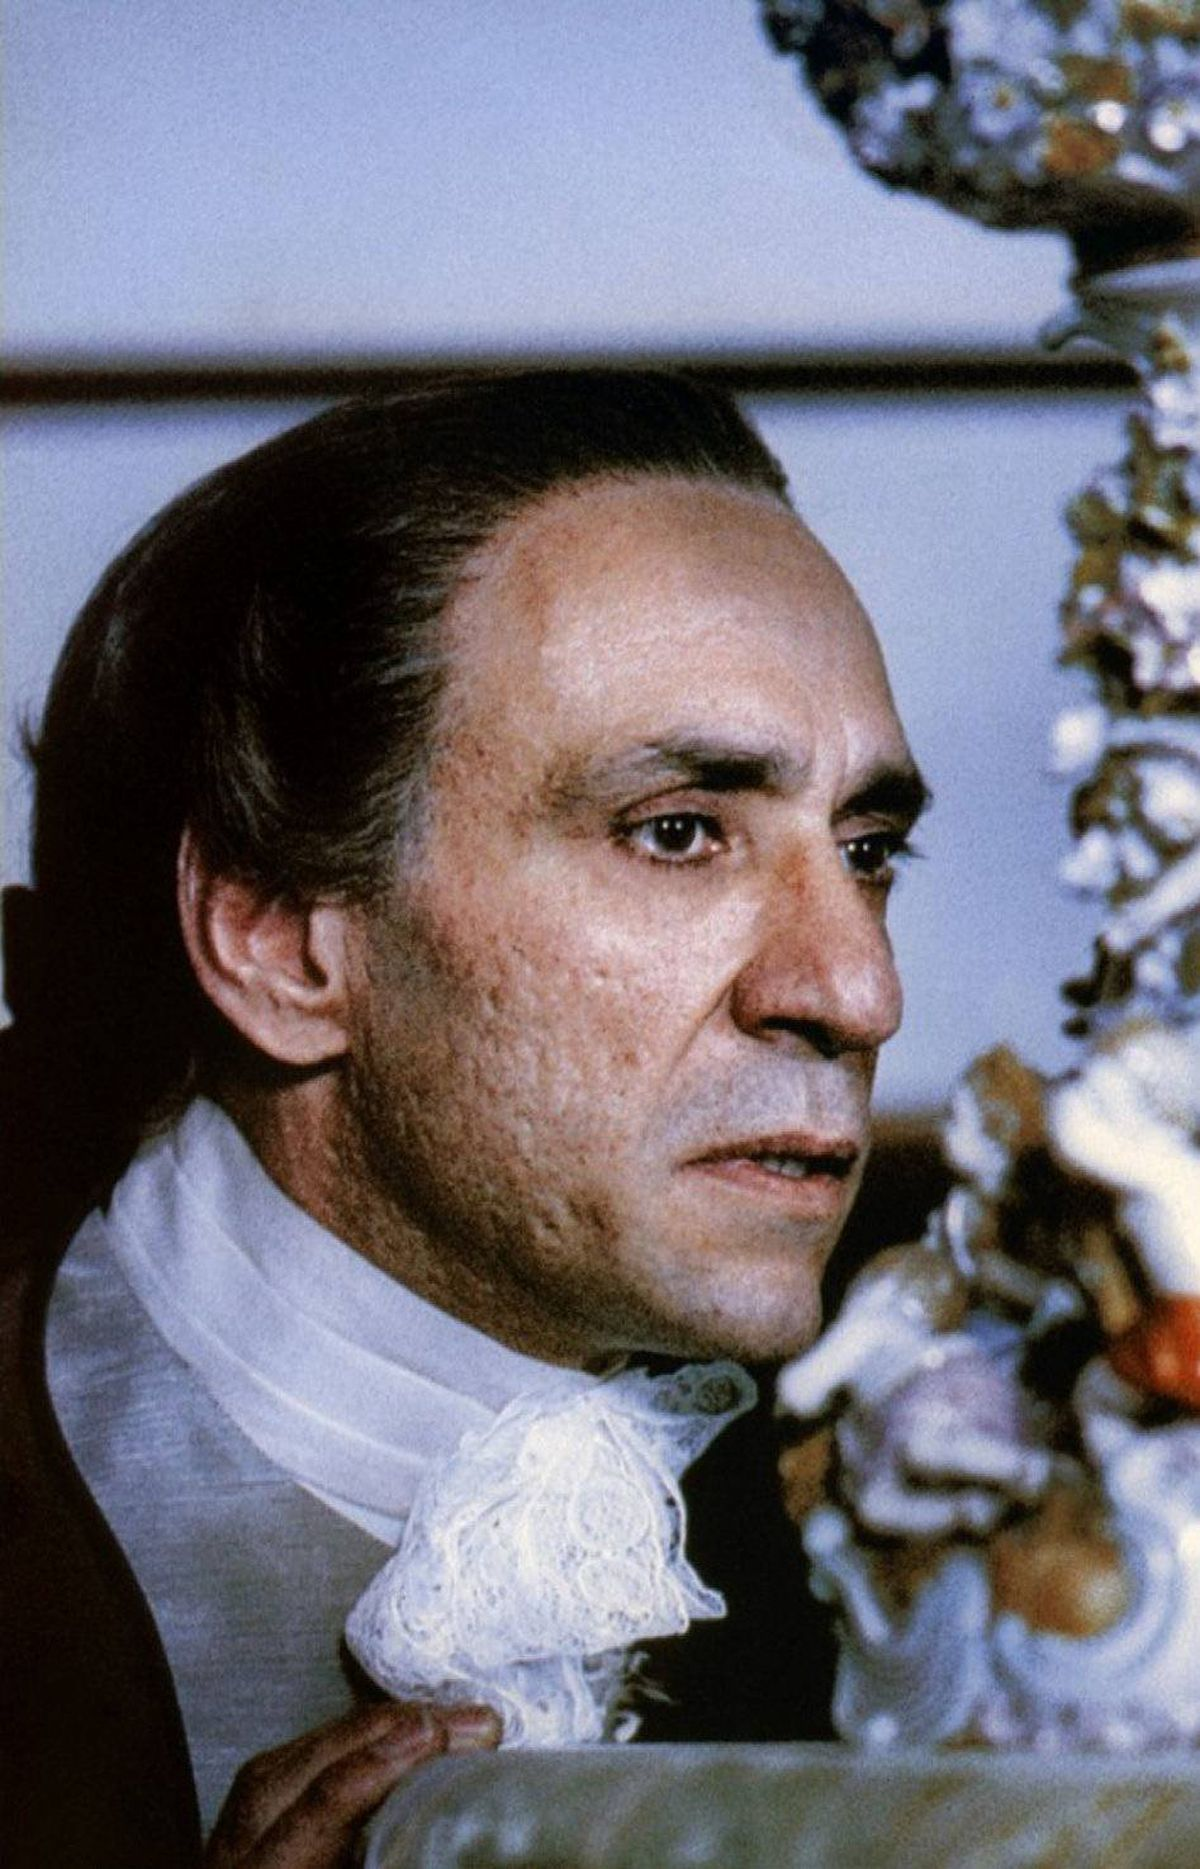 MOVIE Amadeus TCM, midnight ET; 9 p.m. PT Directed by Milos Forman and based on the stage play by Peter Shaffer, this rousing period piece collected best-picture honours at the 1984 Academy Awards. Set in mid-1800s Vienna, the story is told from the viewpoint of the aging composer Salieri, played by F. Murray Abraham in an Oscar-winning turn, who recalls the events of three decades before when the young Wolfgang Amadeus Mozart (Tom Hulce) became the chosen one in the court of Emperor Joseph II (Jeffrey Jones). The bitterly jealous Salieri tries to exact revenge upon rival by posing as a wealthy benefactor and commissioning the fantastically intricate Requiem, which eventually costs the younger composer his very life. Brilliant and buoyed immeasurably by the Mozart soundtrack.